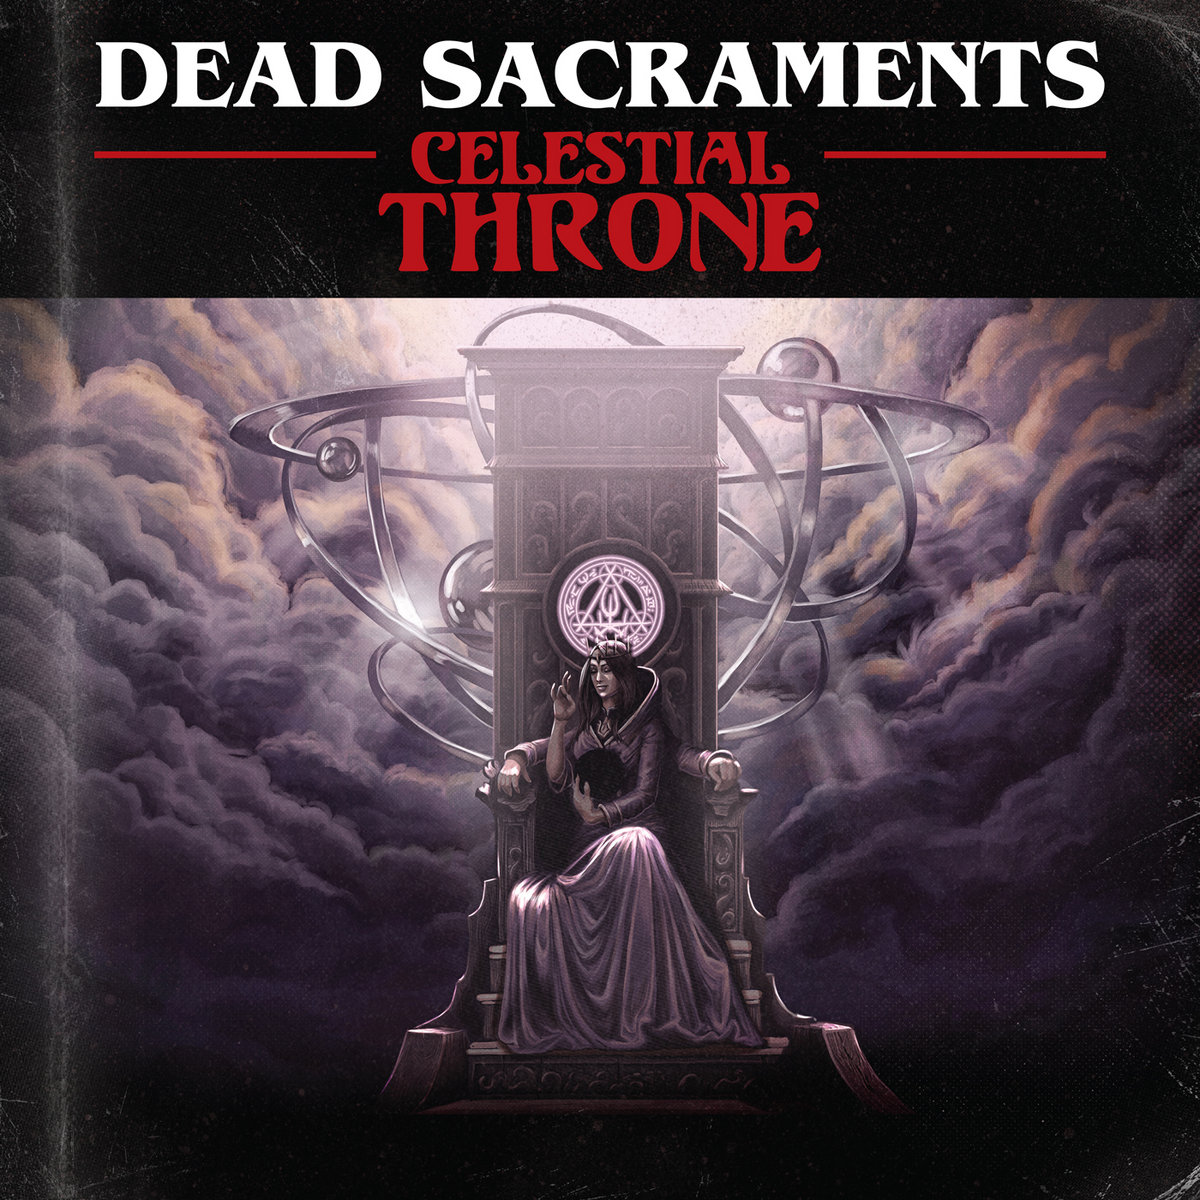 Dead Sacraments Celestial Throne